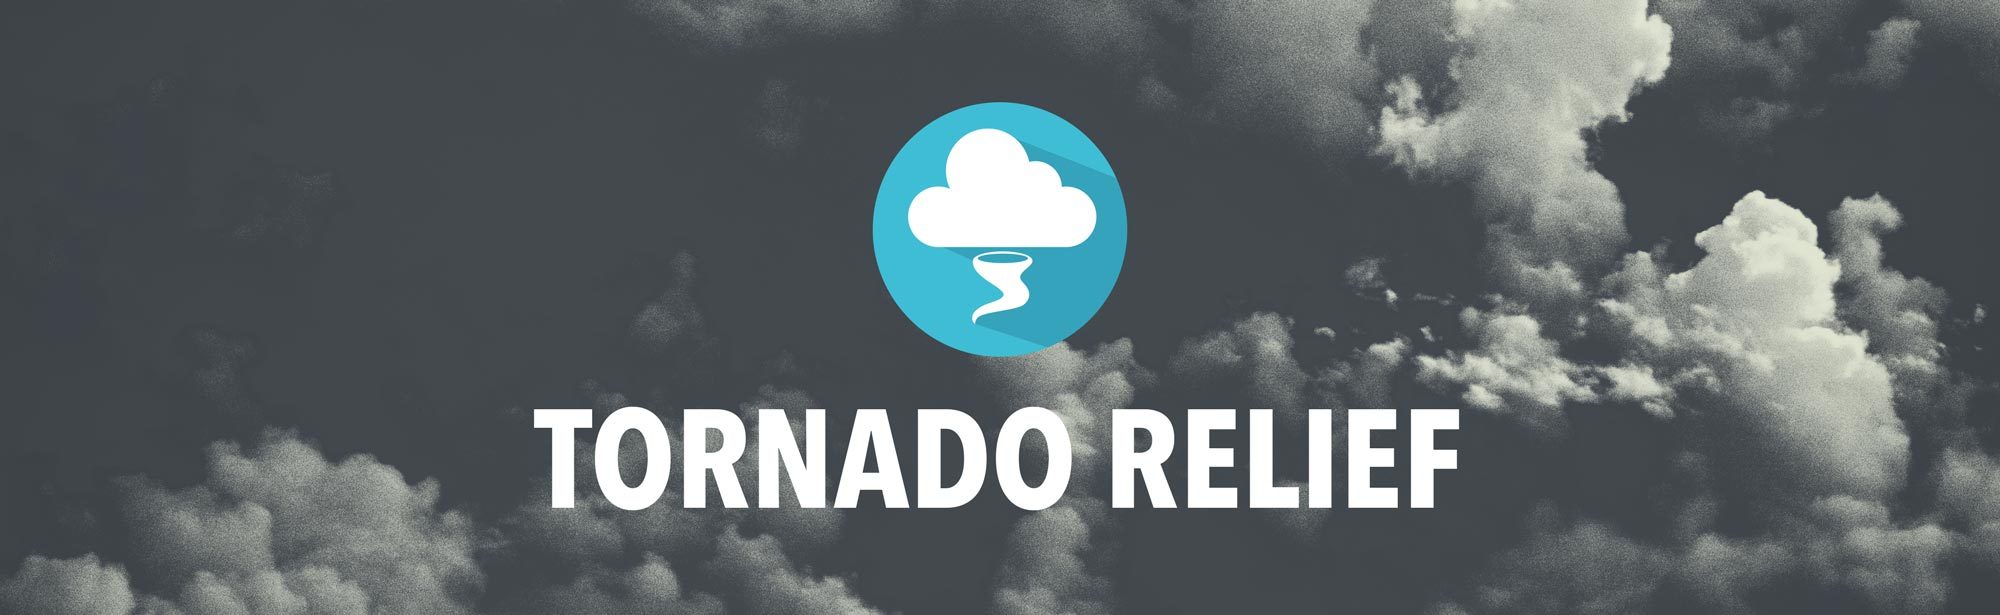 Tornado Relief Image - Inclement Weather Page Header - Grace Community Church